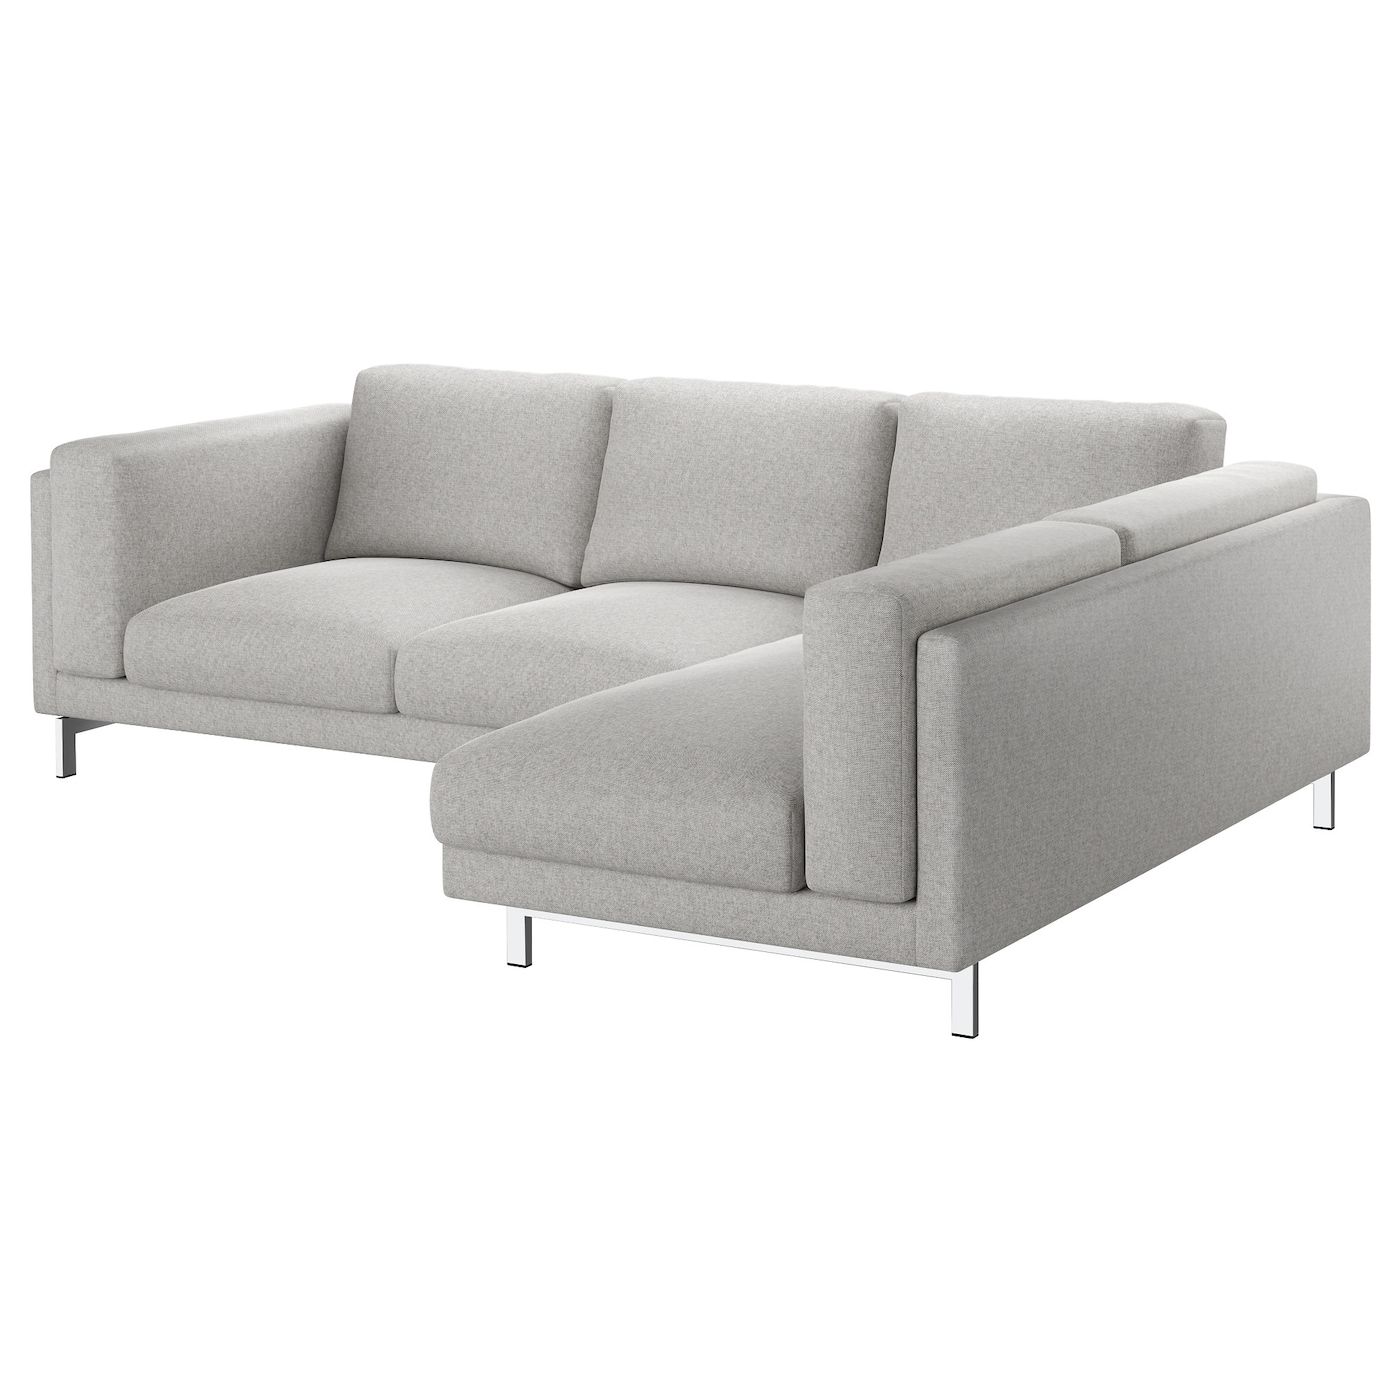 Nockeby two seat sofa w chaise longue right tallmyra white for 2 seater chaise sofa